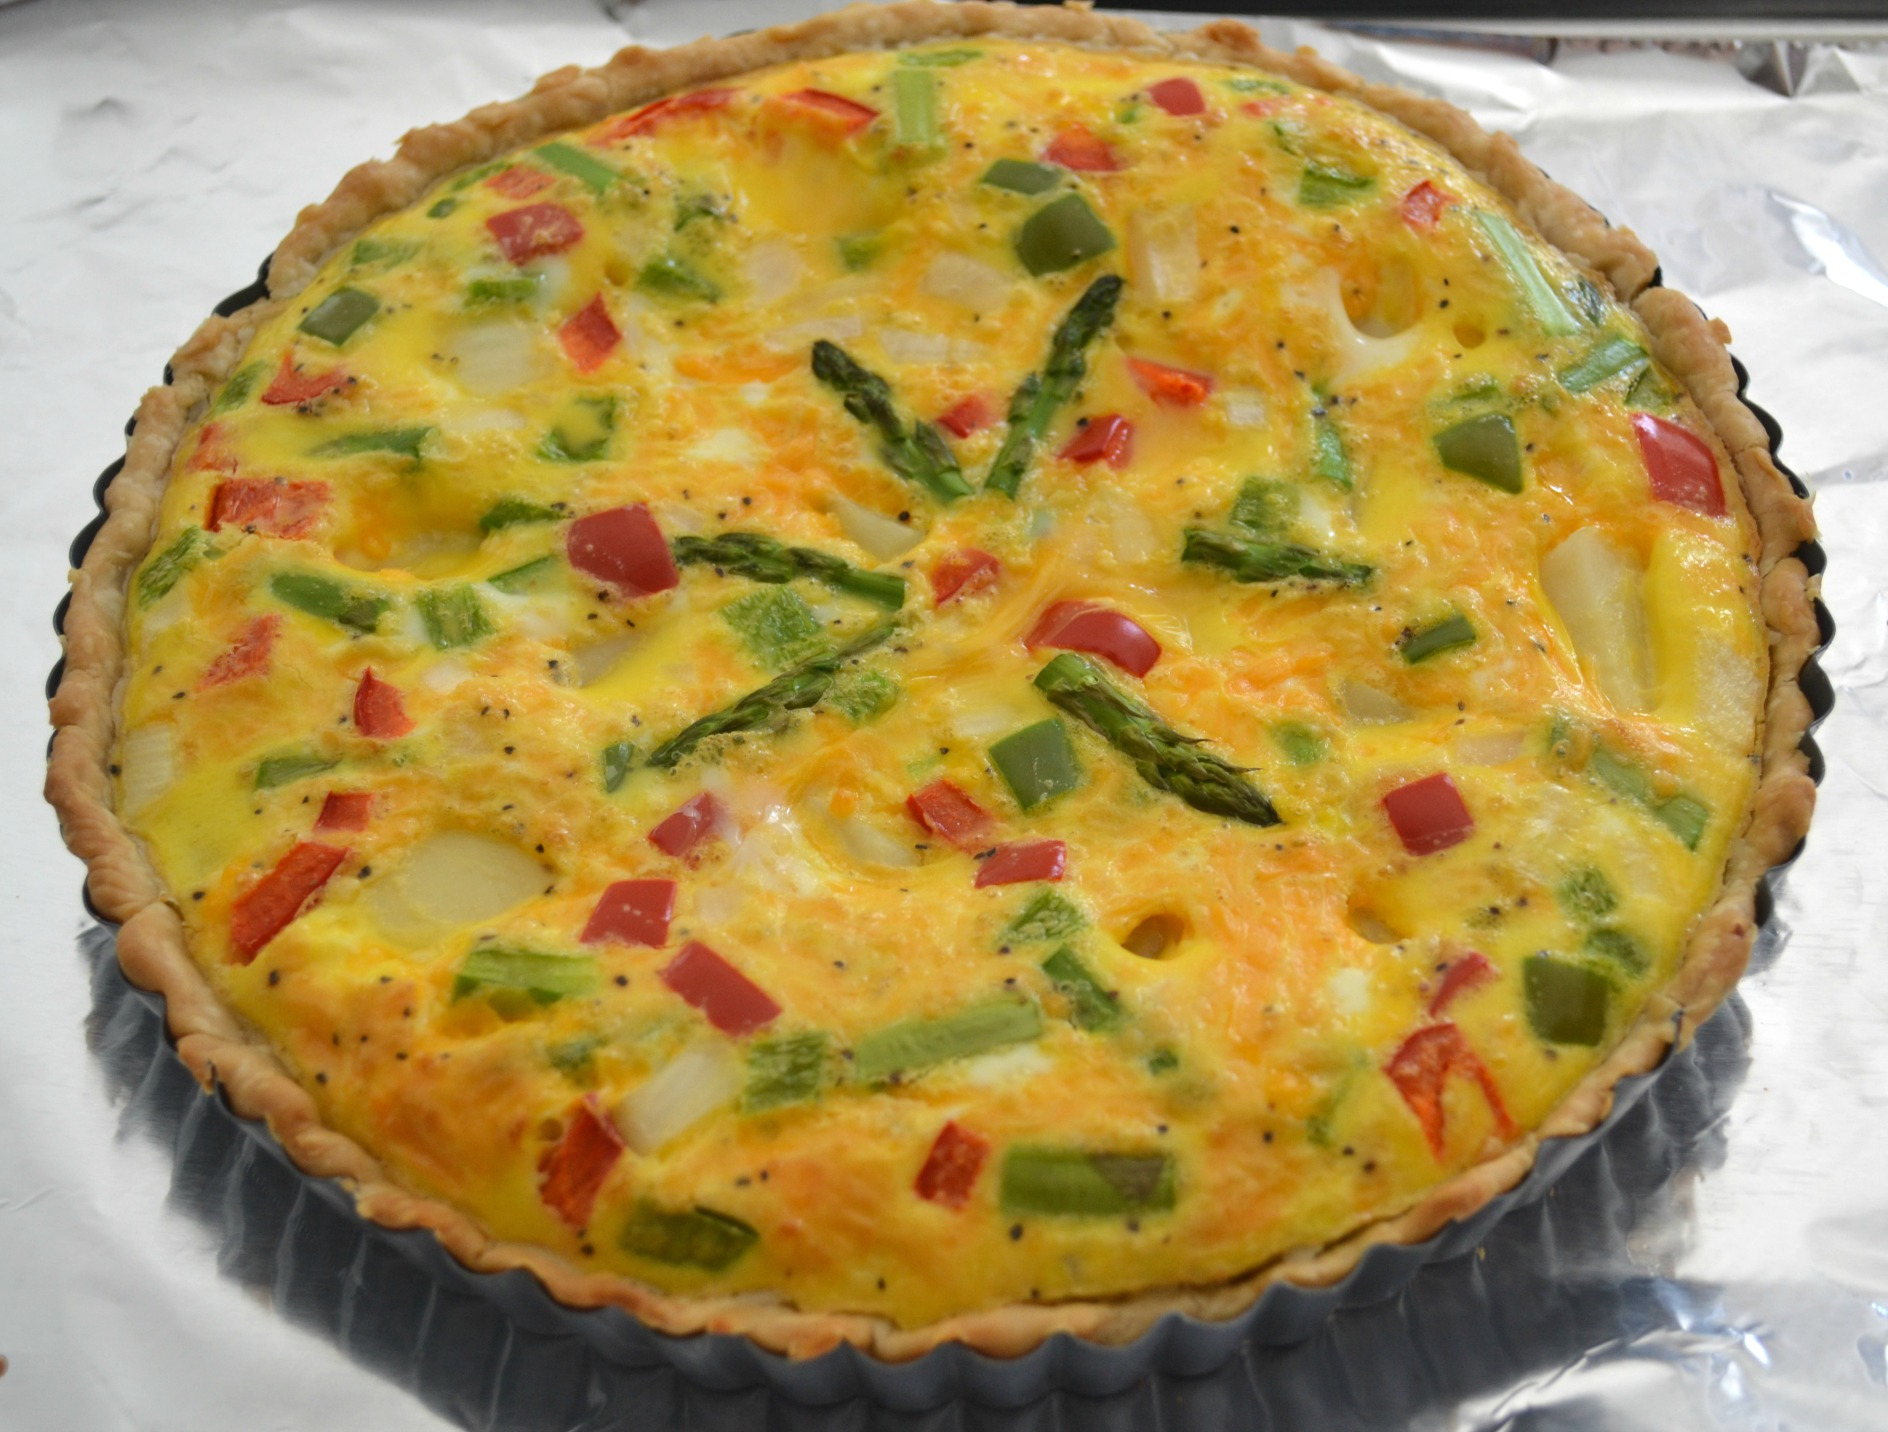 veggie tart, breakfast, brunch, eggs, cheese, asparagus